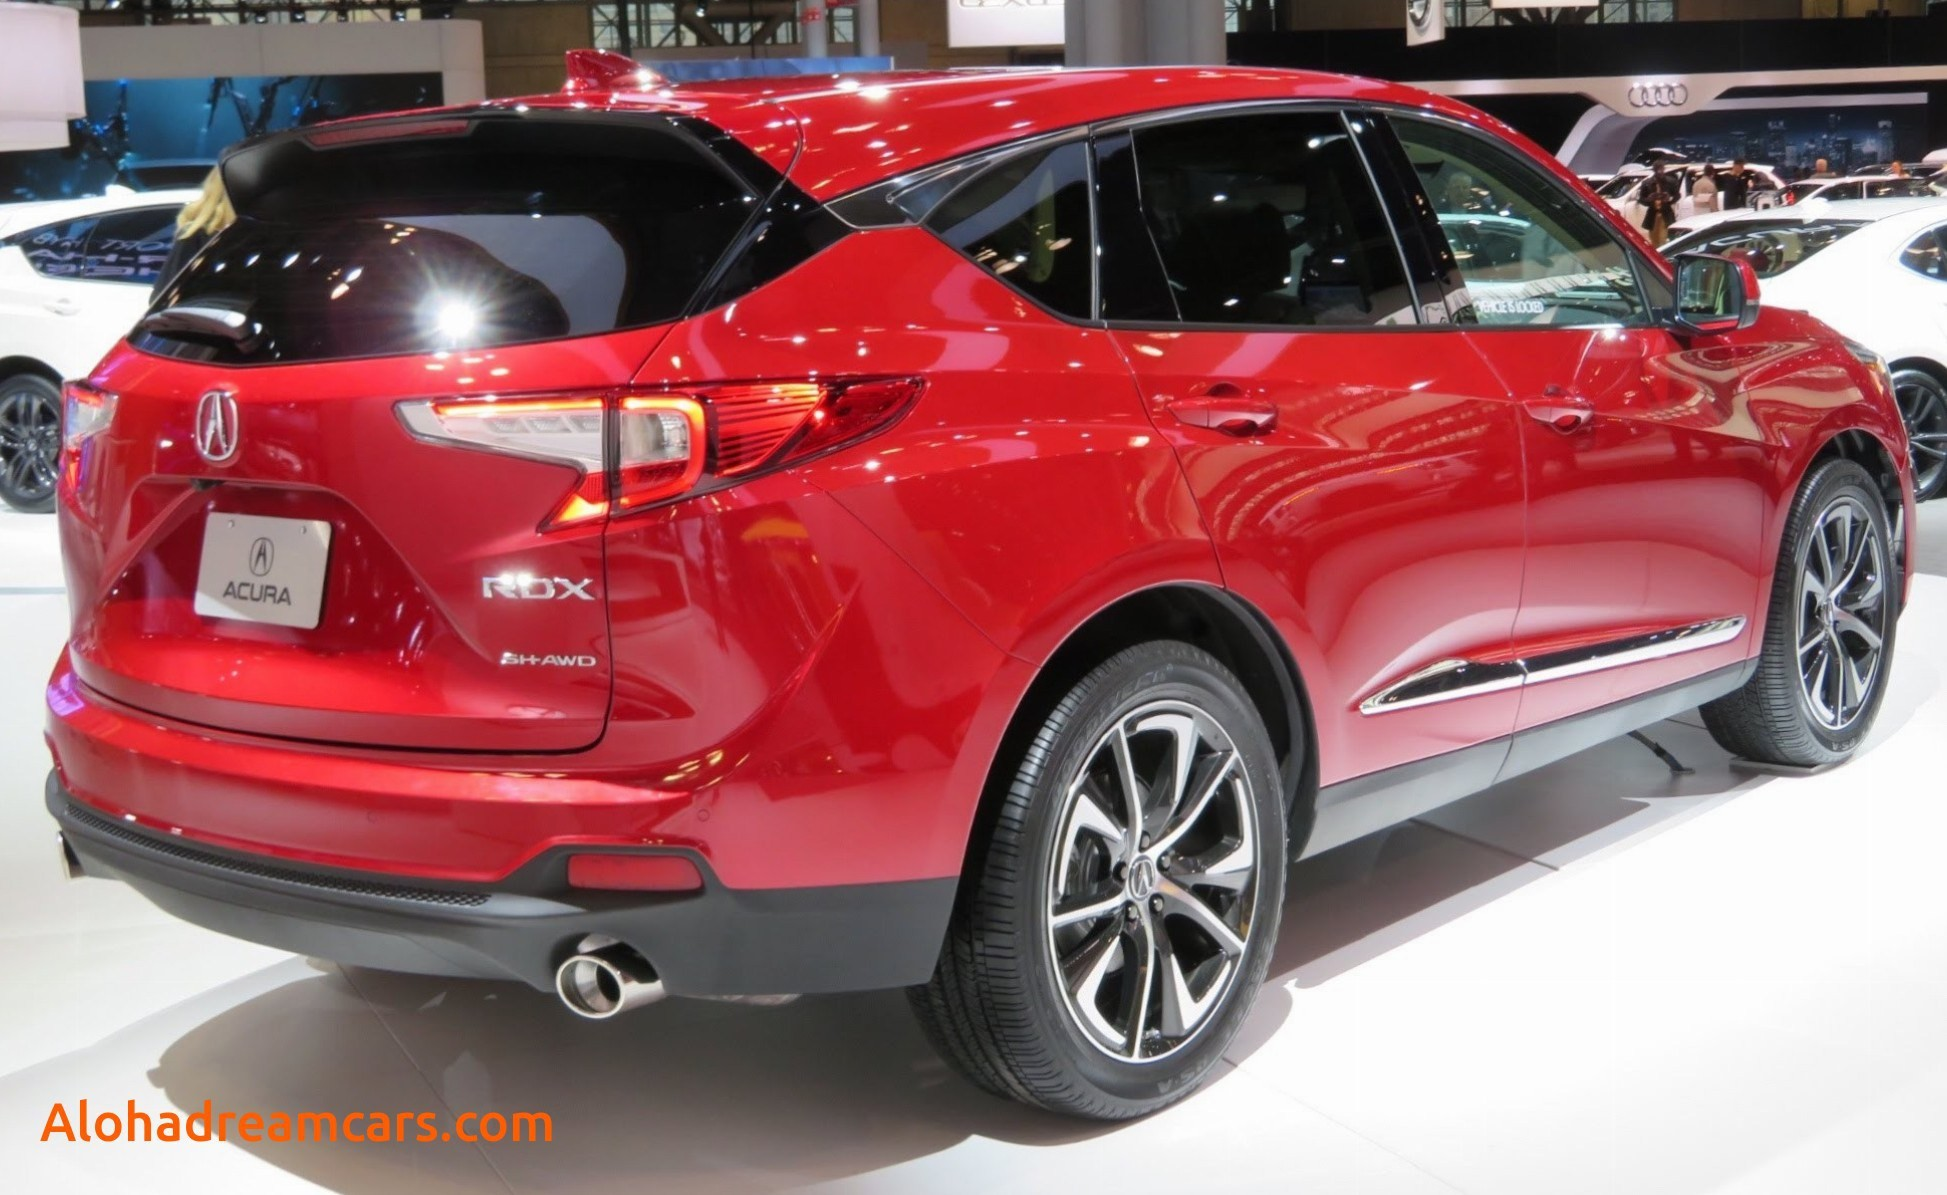 2019 Rdx Pricing 2019 Subaru Tribeca Review Acura Rdx 2019 2019 Acura Rdx Starts at